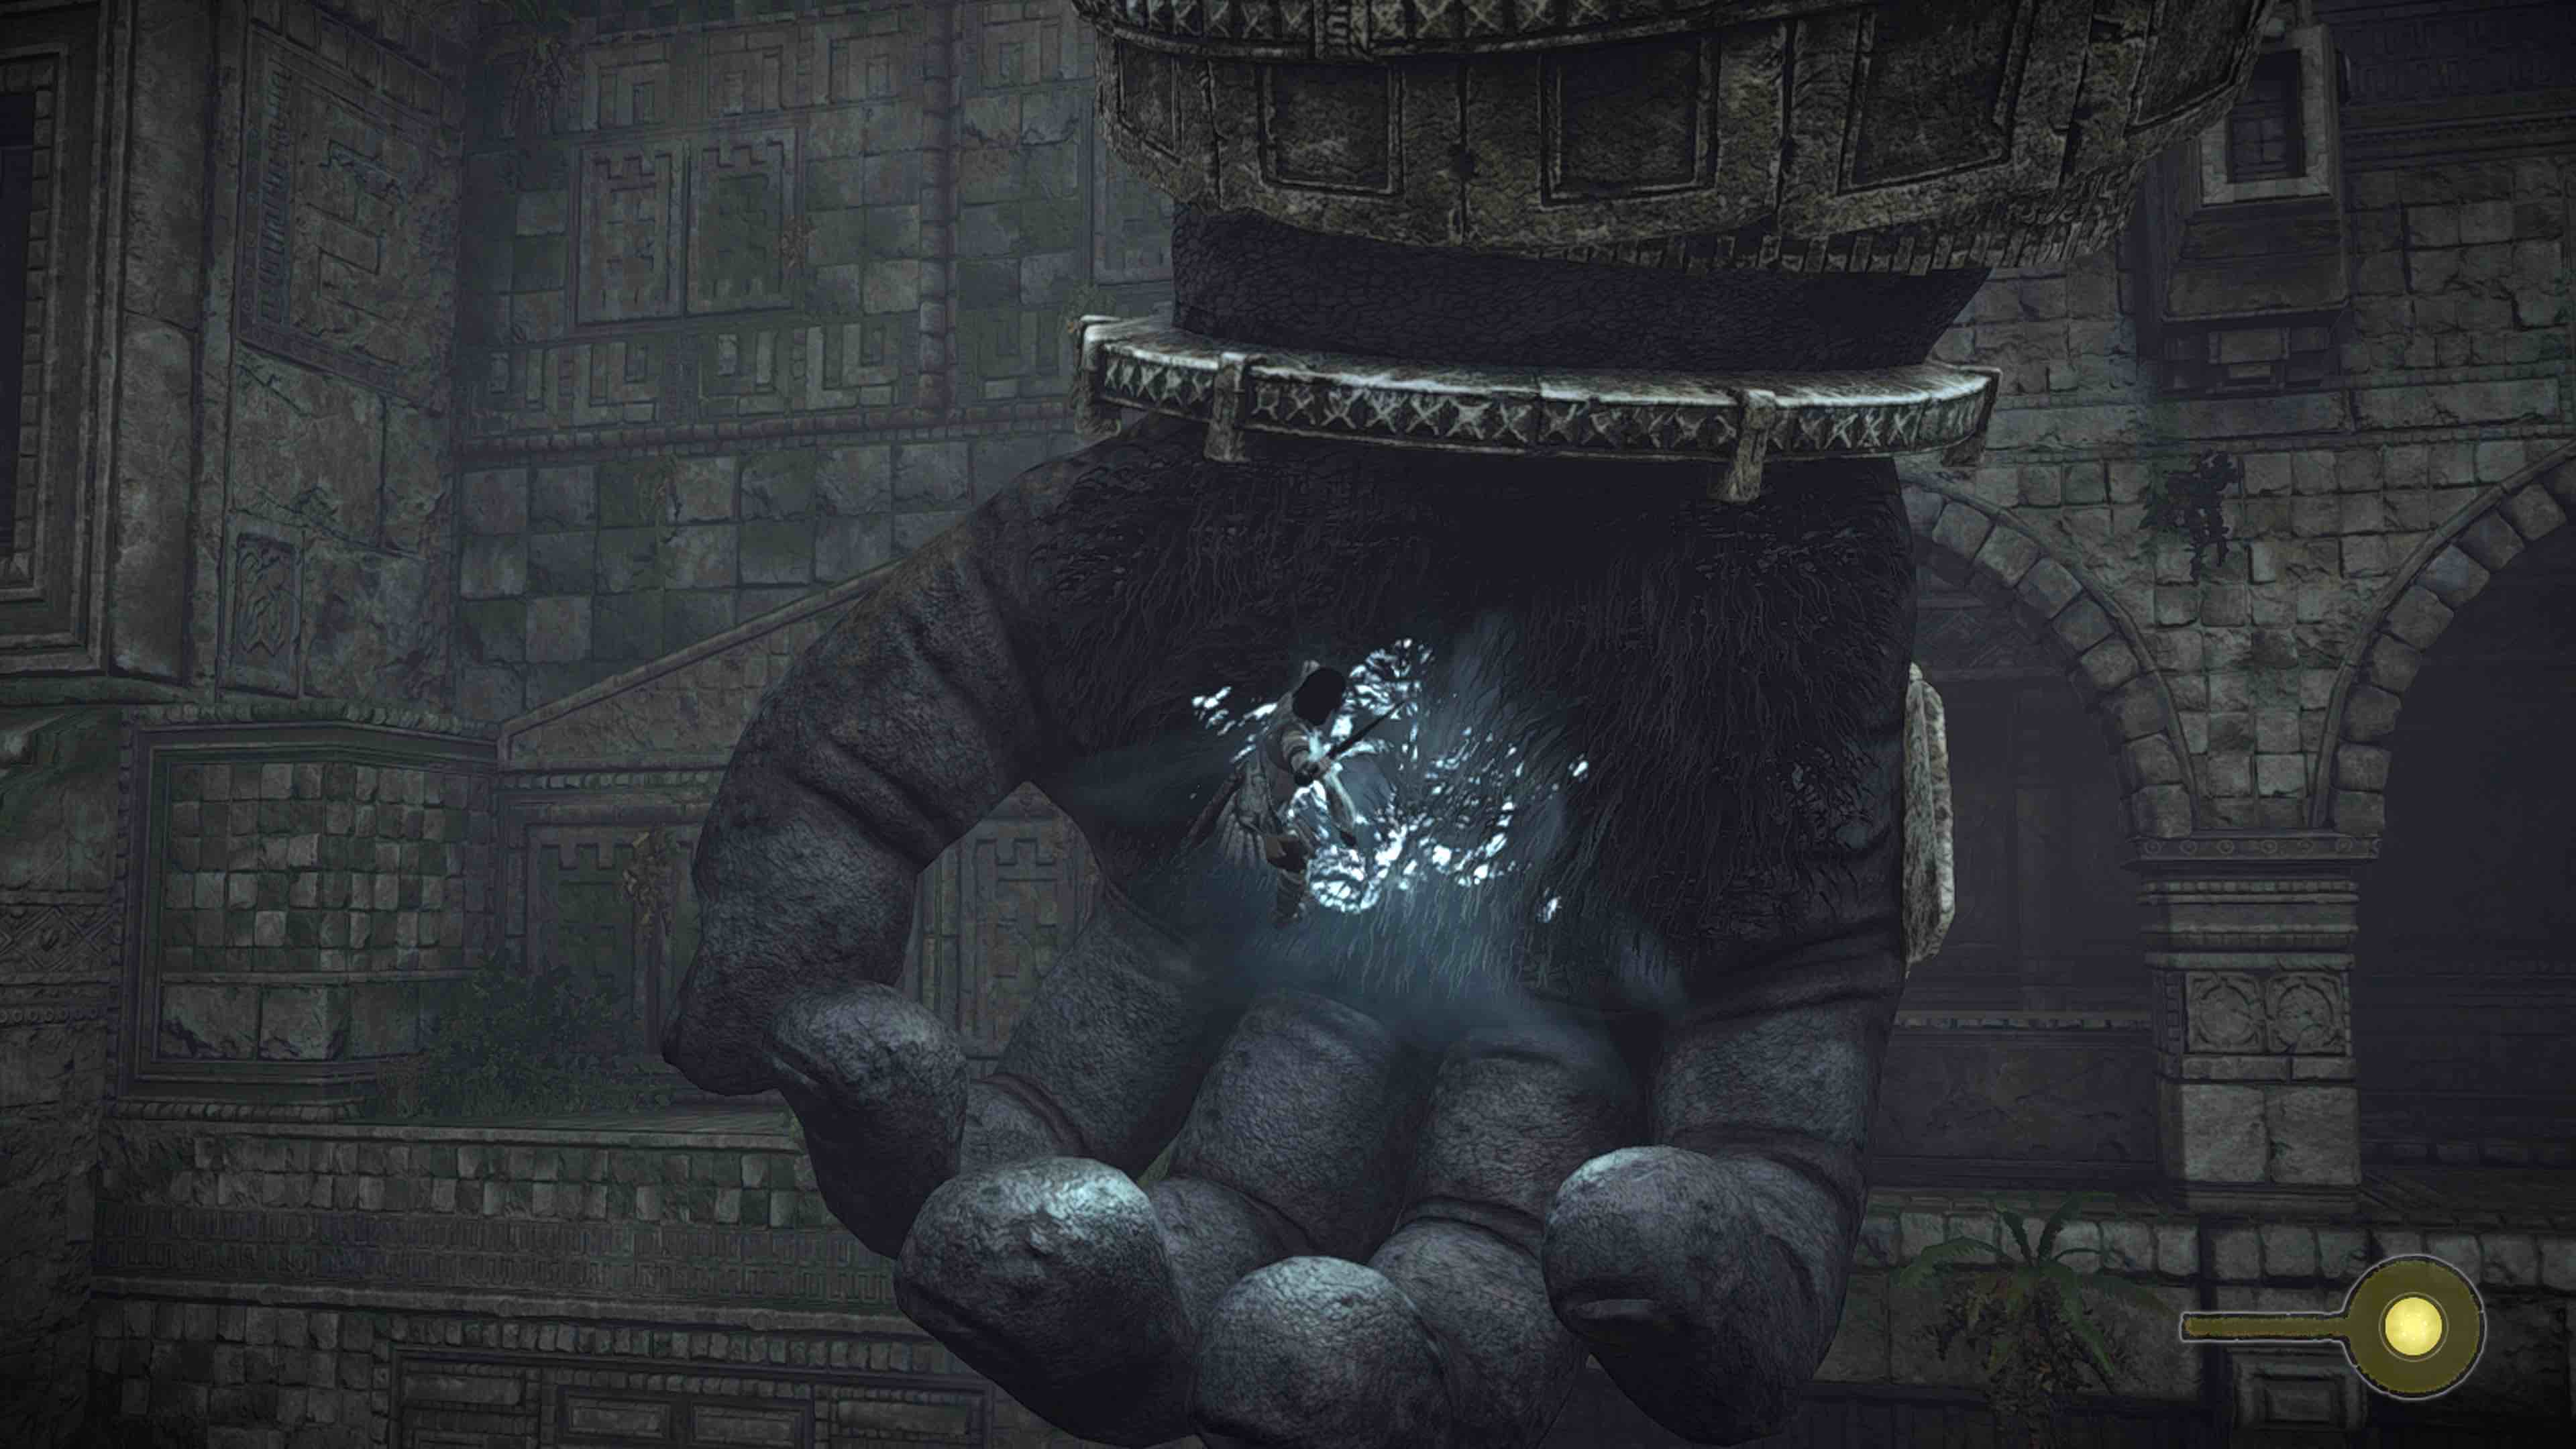 Shadow_of_the_Colossus_Coloso_15_7